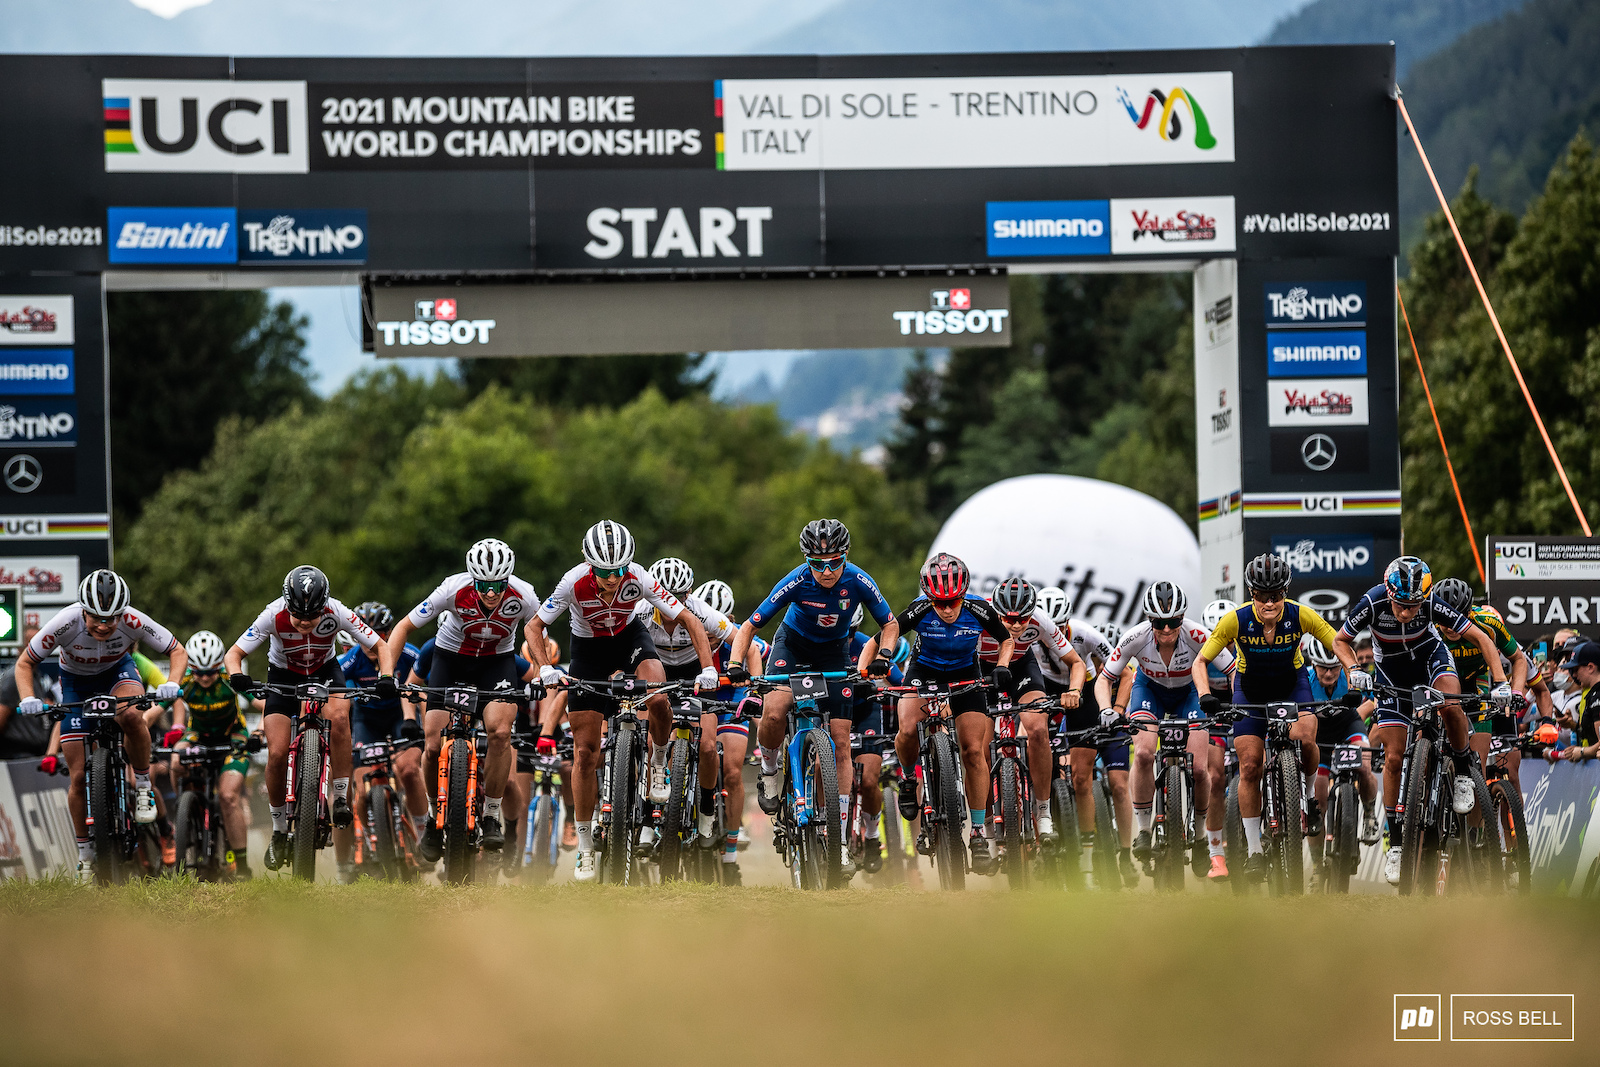 The women leave the start for a fast and frantic 20 minutes in the saddle.